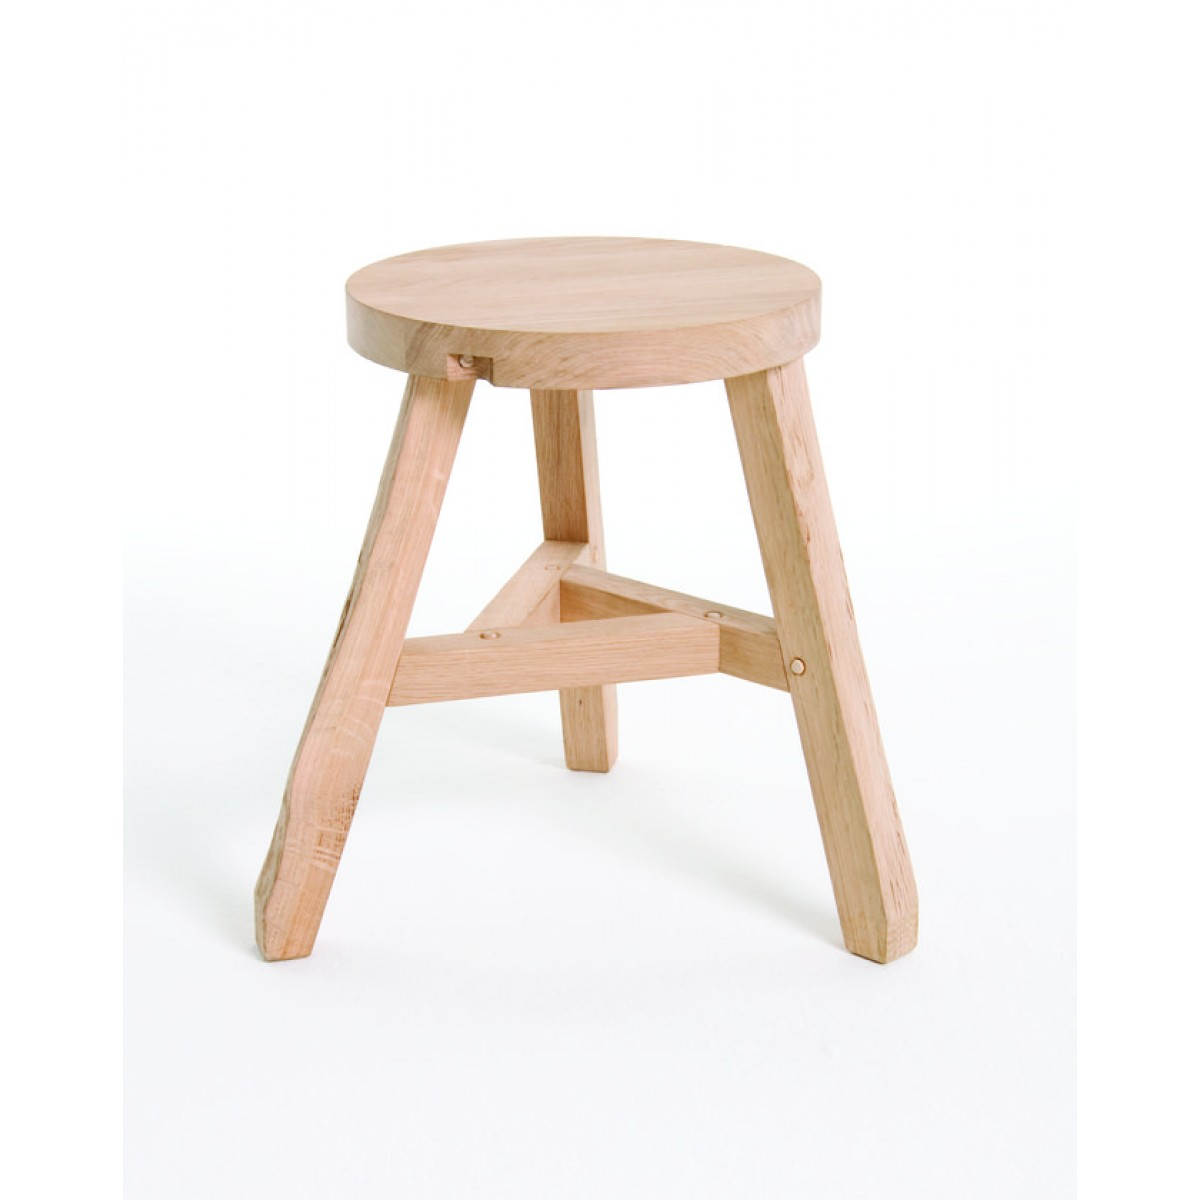 Designer Hocker Holz Design Hocker Aequivalere